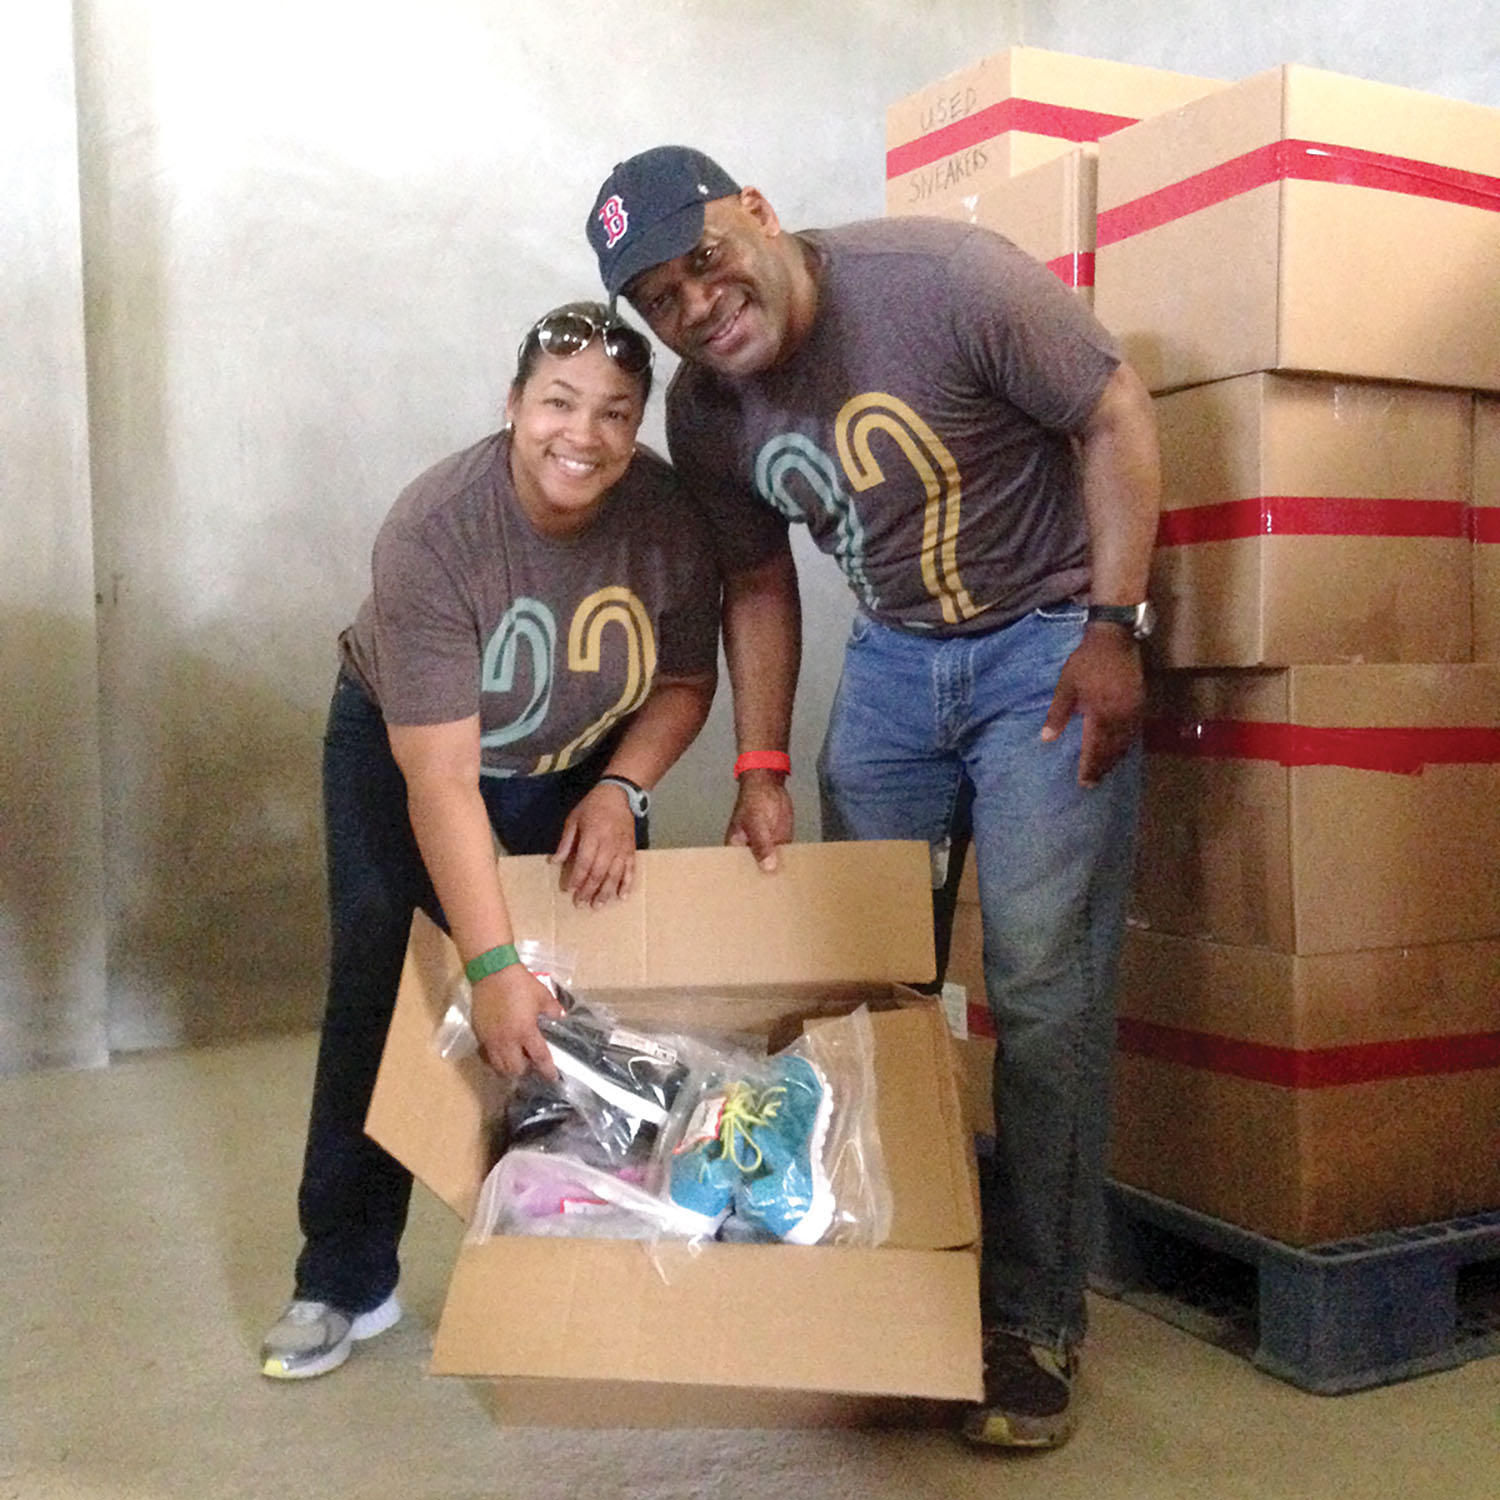 Dr. Timothy Sloan and his wife, Dr. Sonya Sloan, from The Luke church in Humble, TX, visited our warehouse in Haiti.